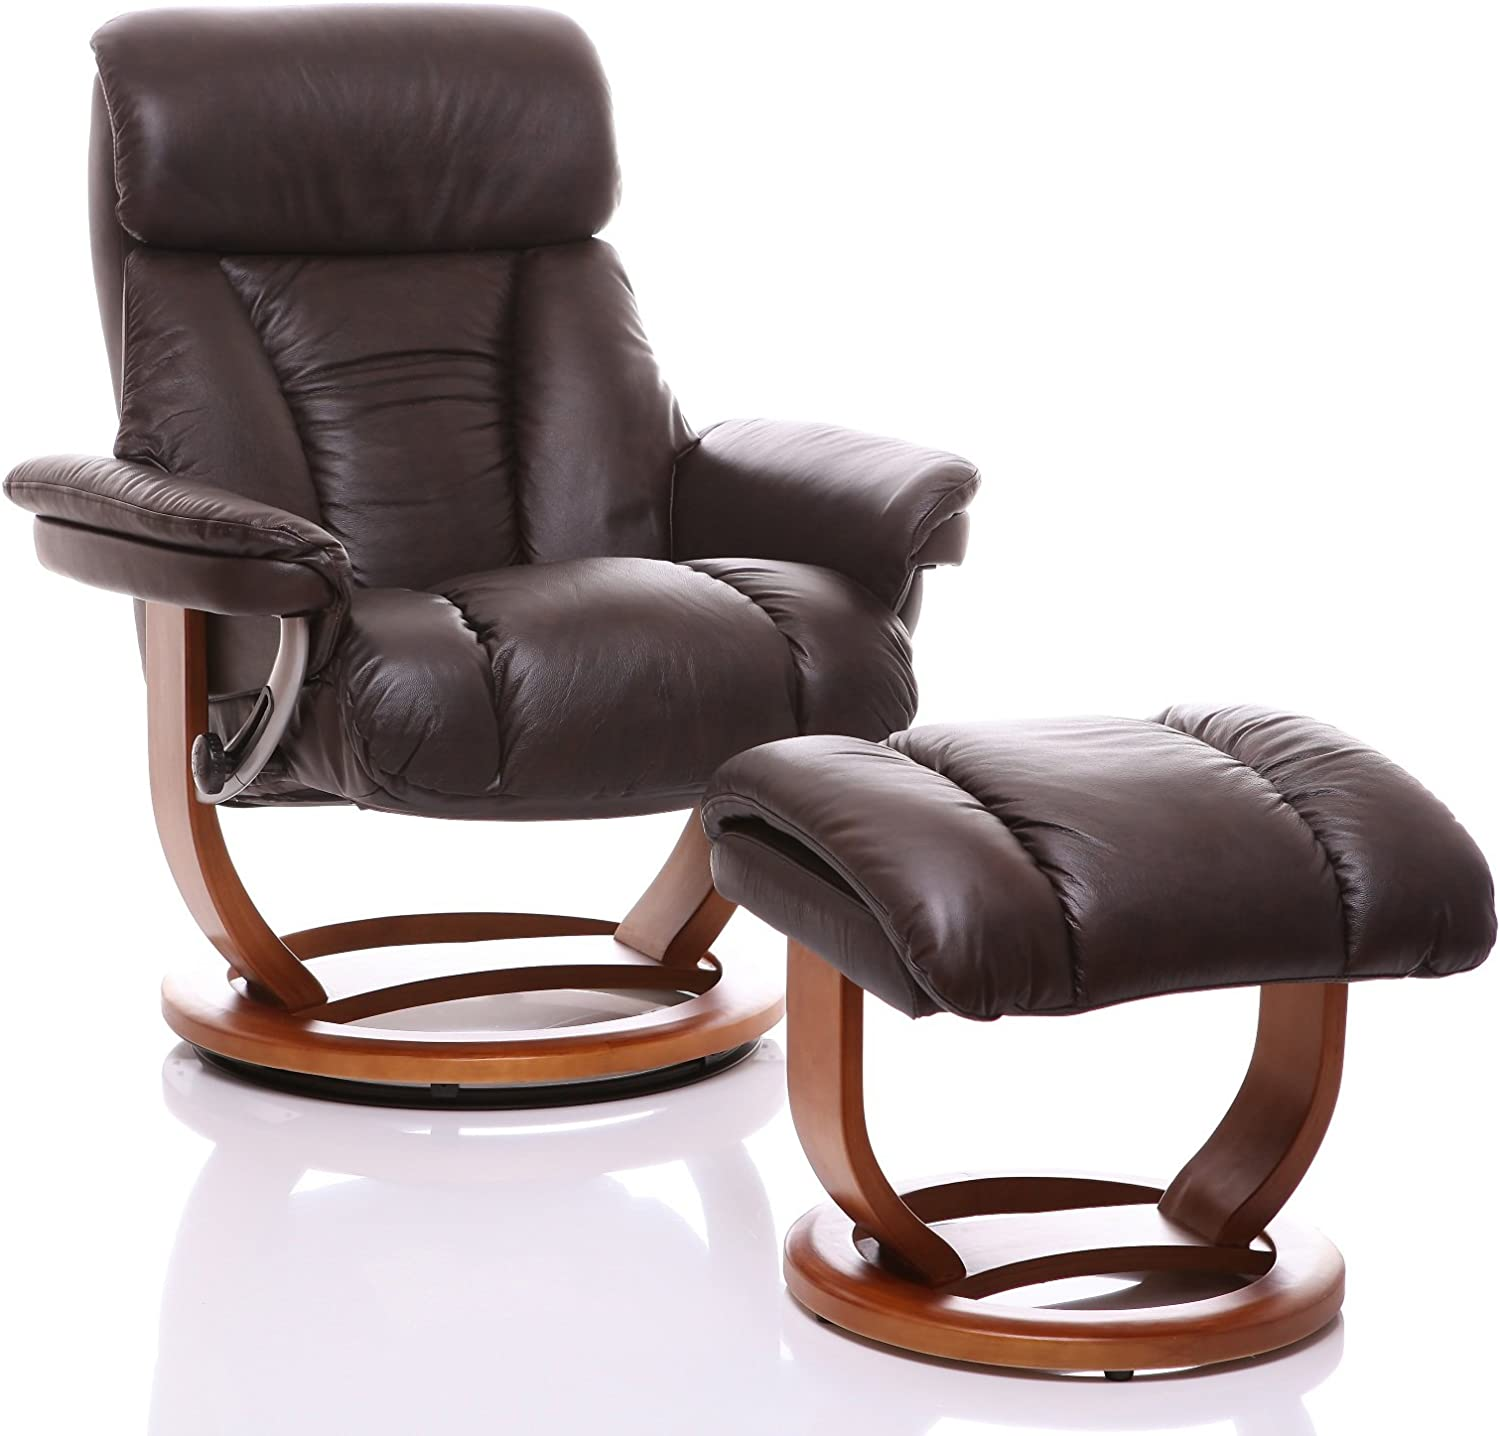 The Mars Premium Genuine Leather Swivel Recliner ChairFootstool In Chocolate